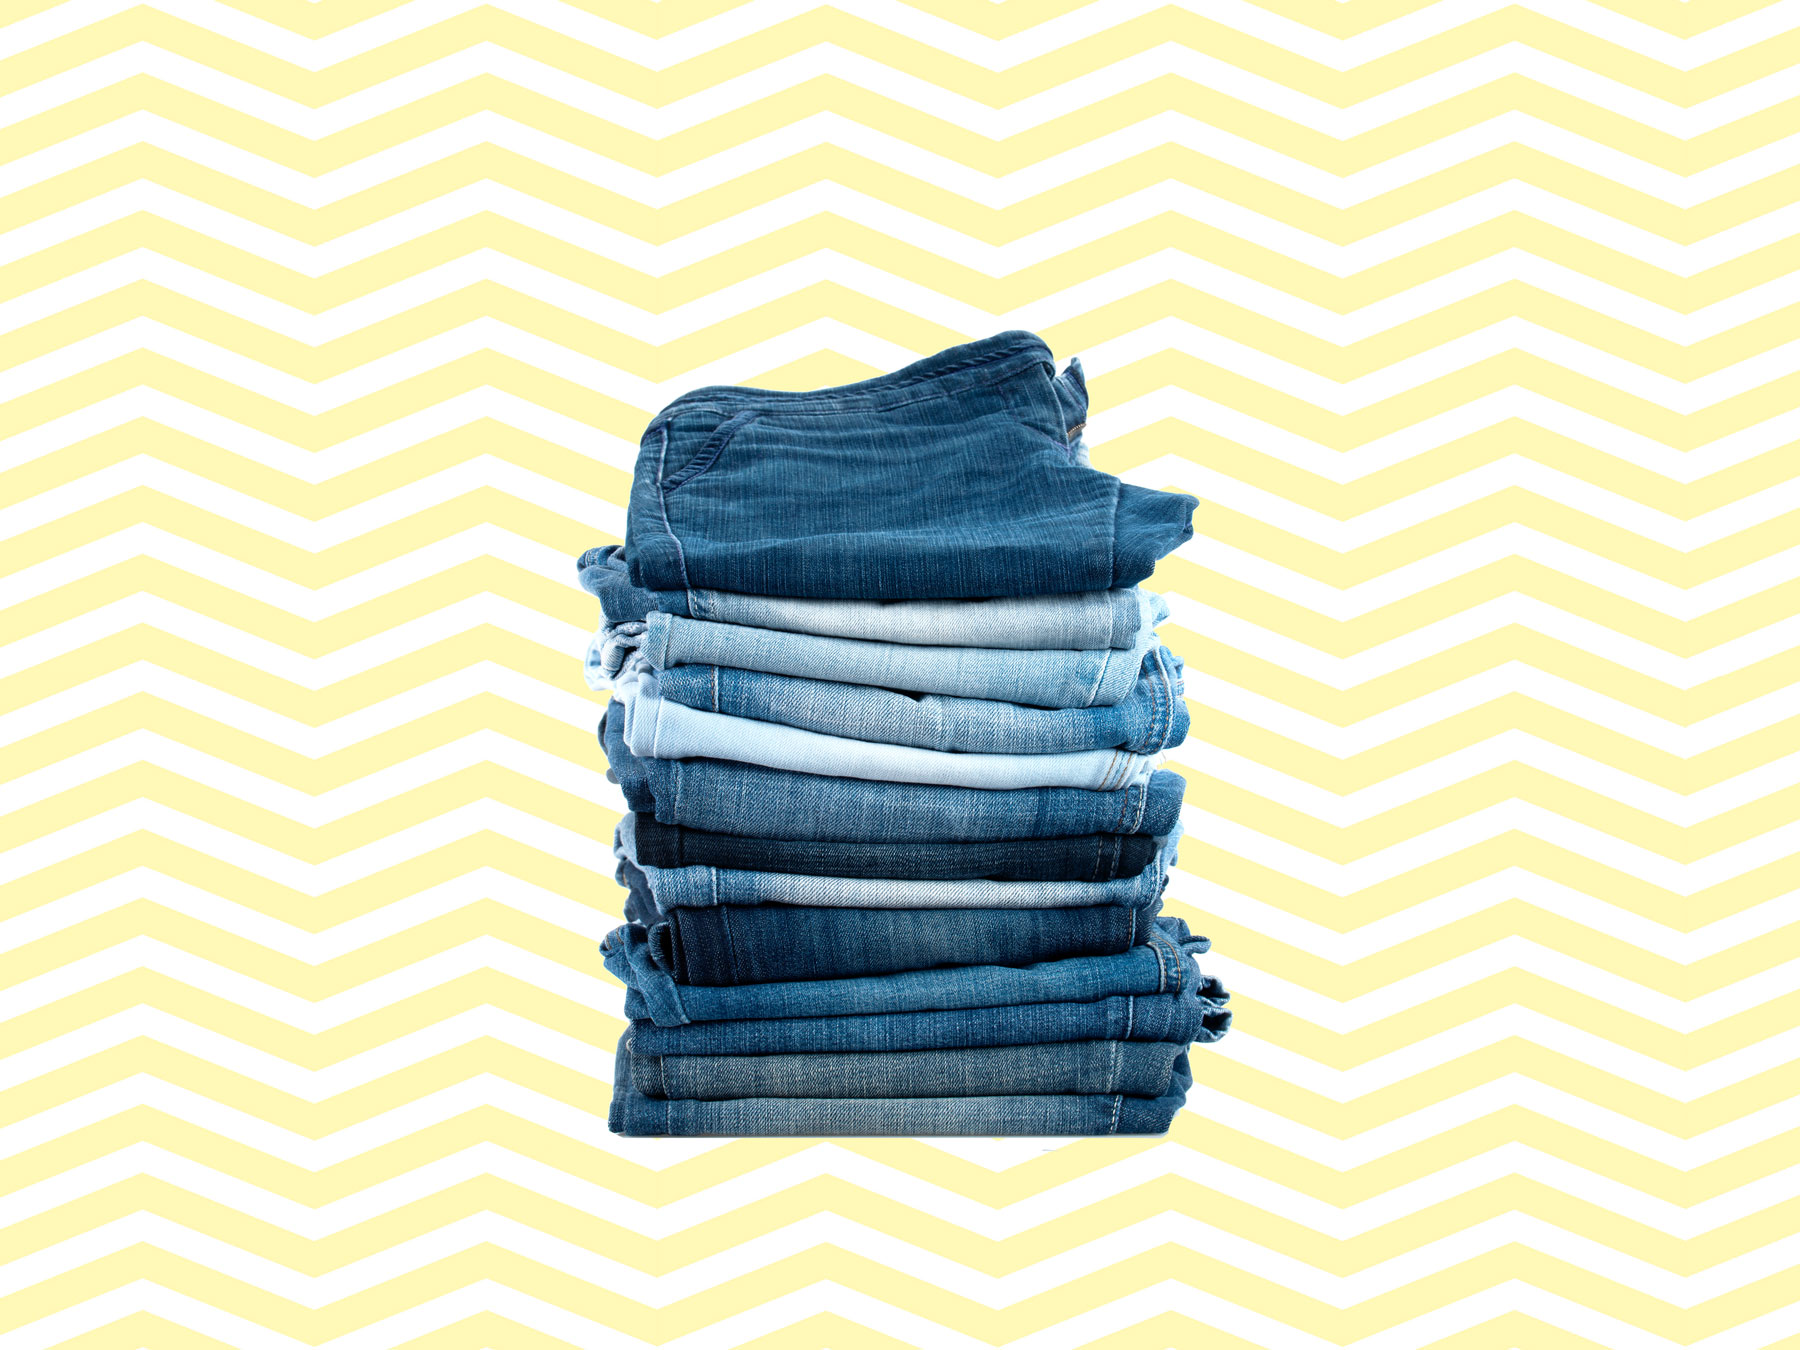 How to Wash Jeans So They'll Last Forever - jeans care guide